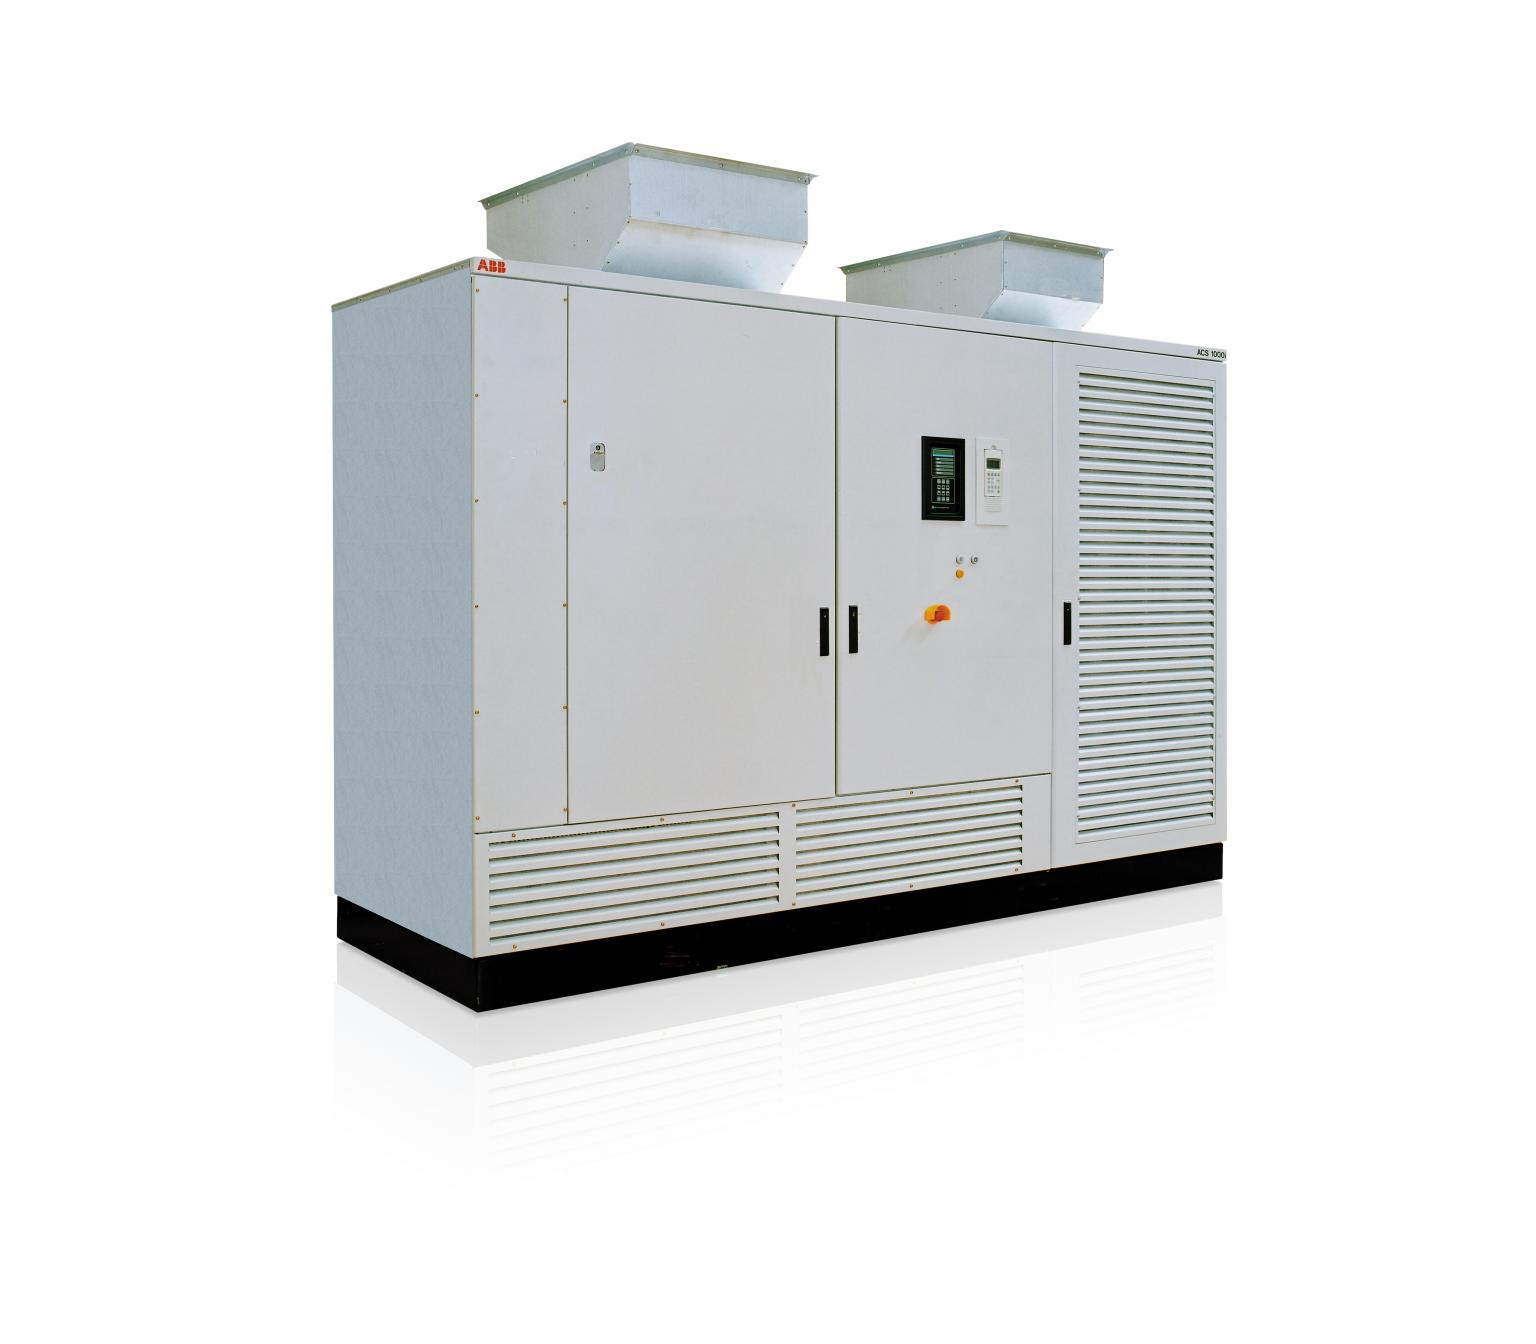 ACS1000i medium voltage variable frequency drive from ABB